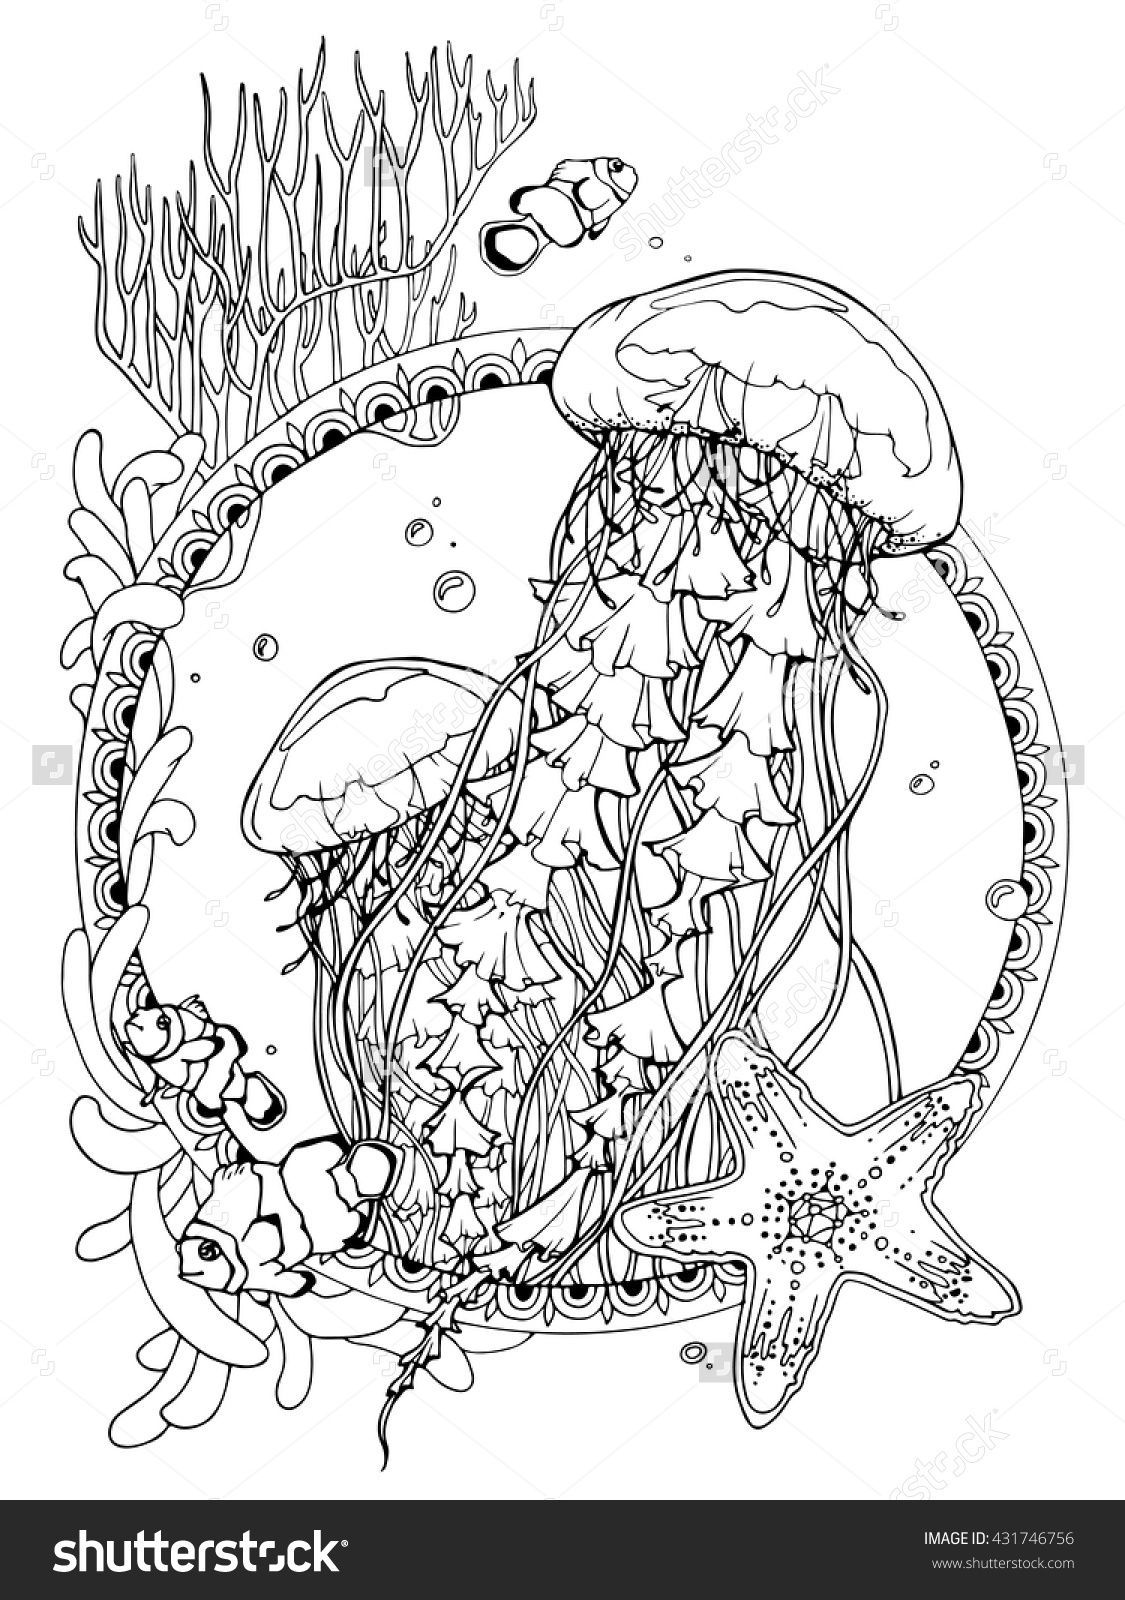 Coloring Page For Adults Antistress Drawing Ocean Life Jellyfishes Coloring Pages Ocean Coloring Pages Drawings